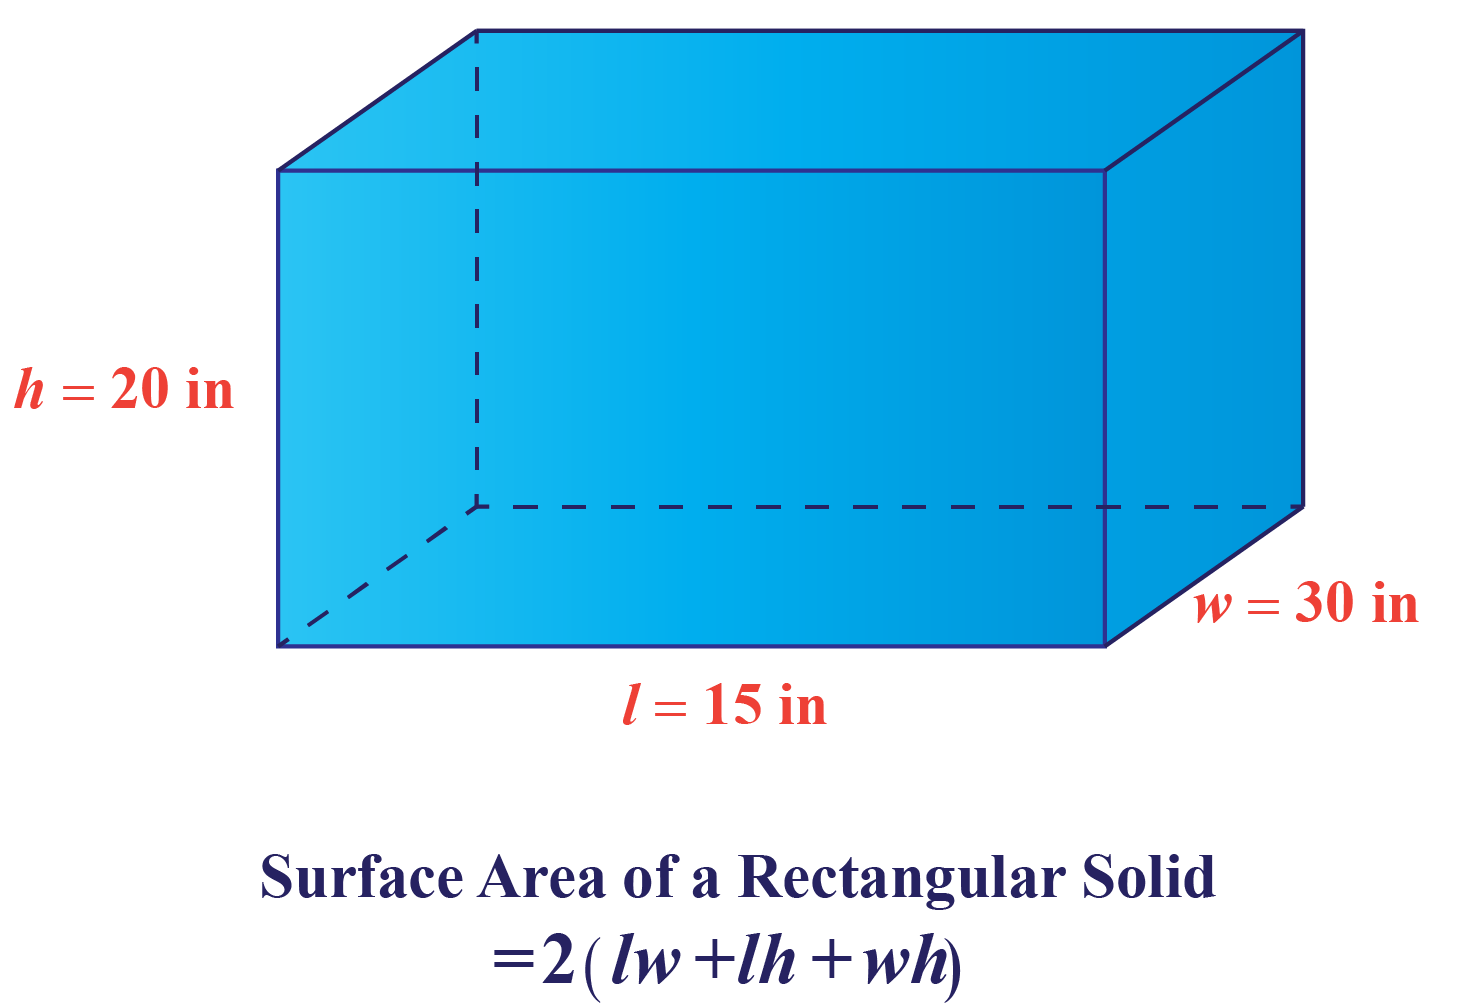 a rectangular prism having \(30\) inch width, \(15\) inch length and \(20\) inch height.